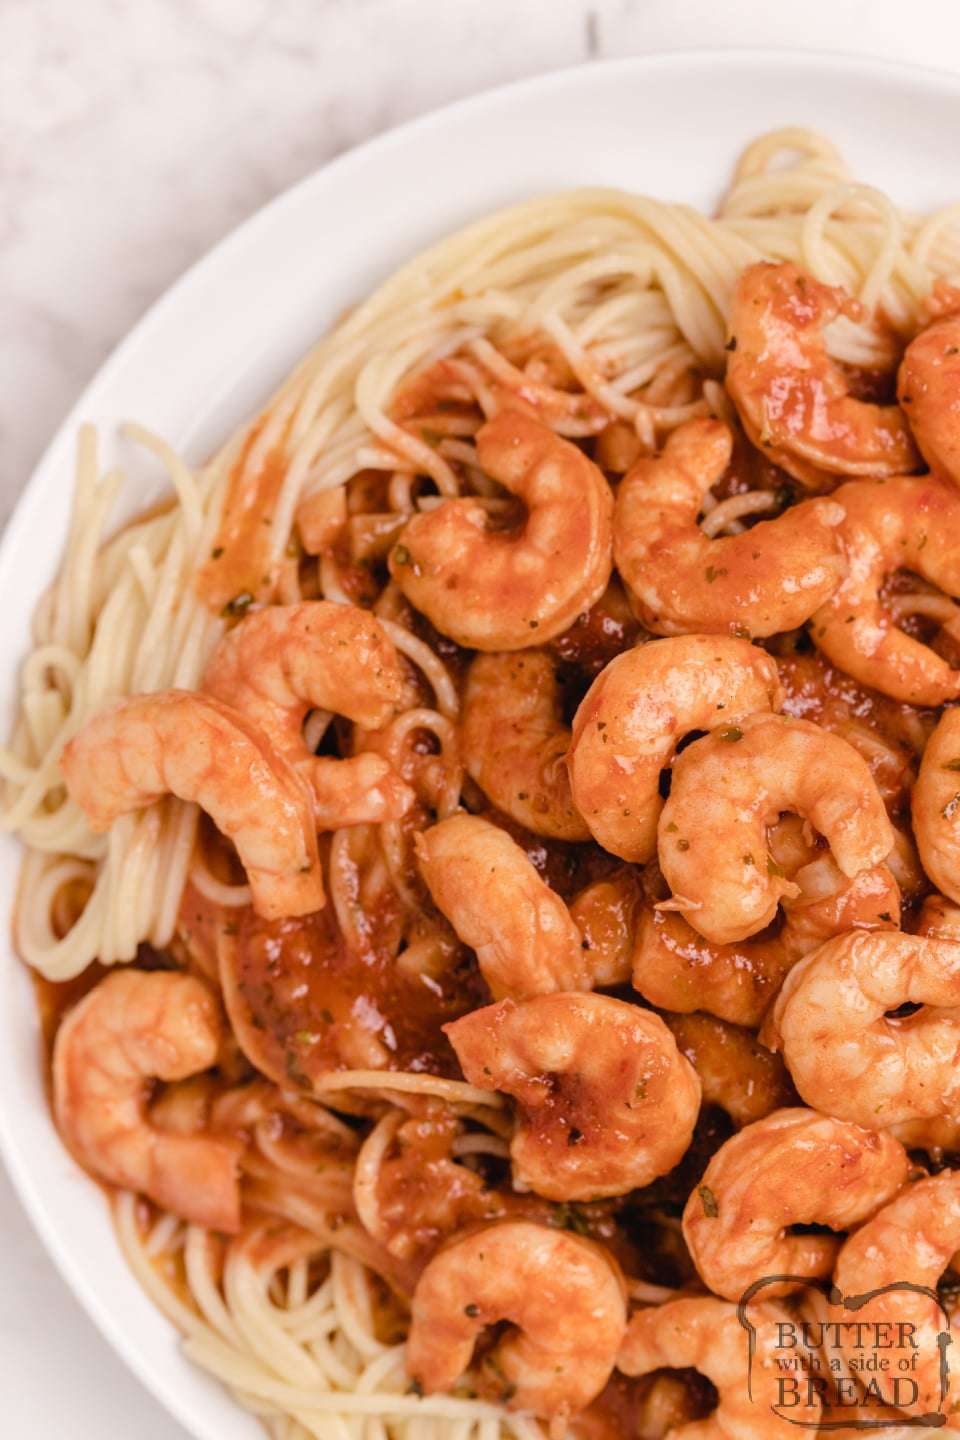 Fresh shrimp in a buttery scampi sauce over pasta